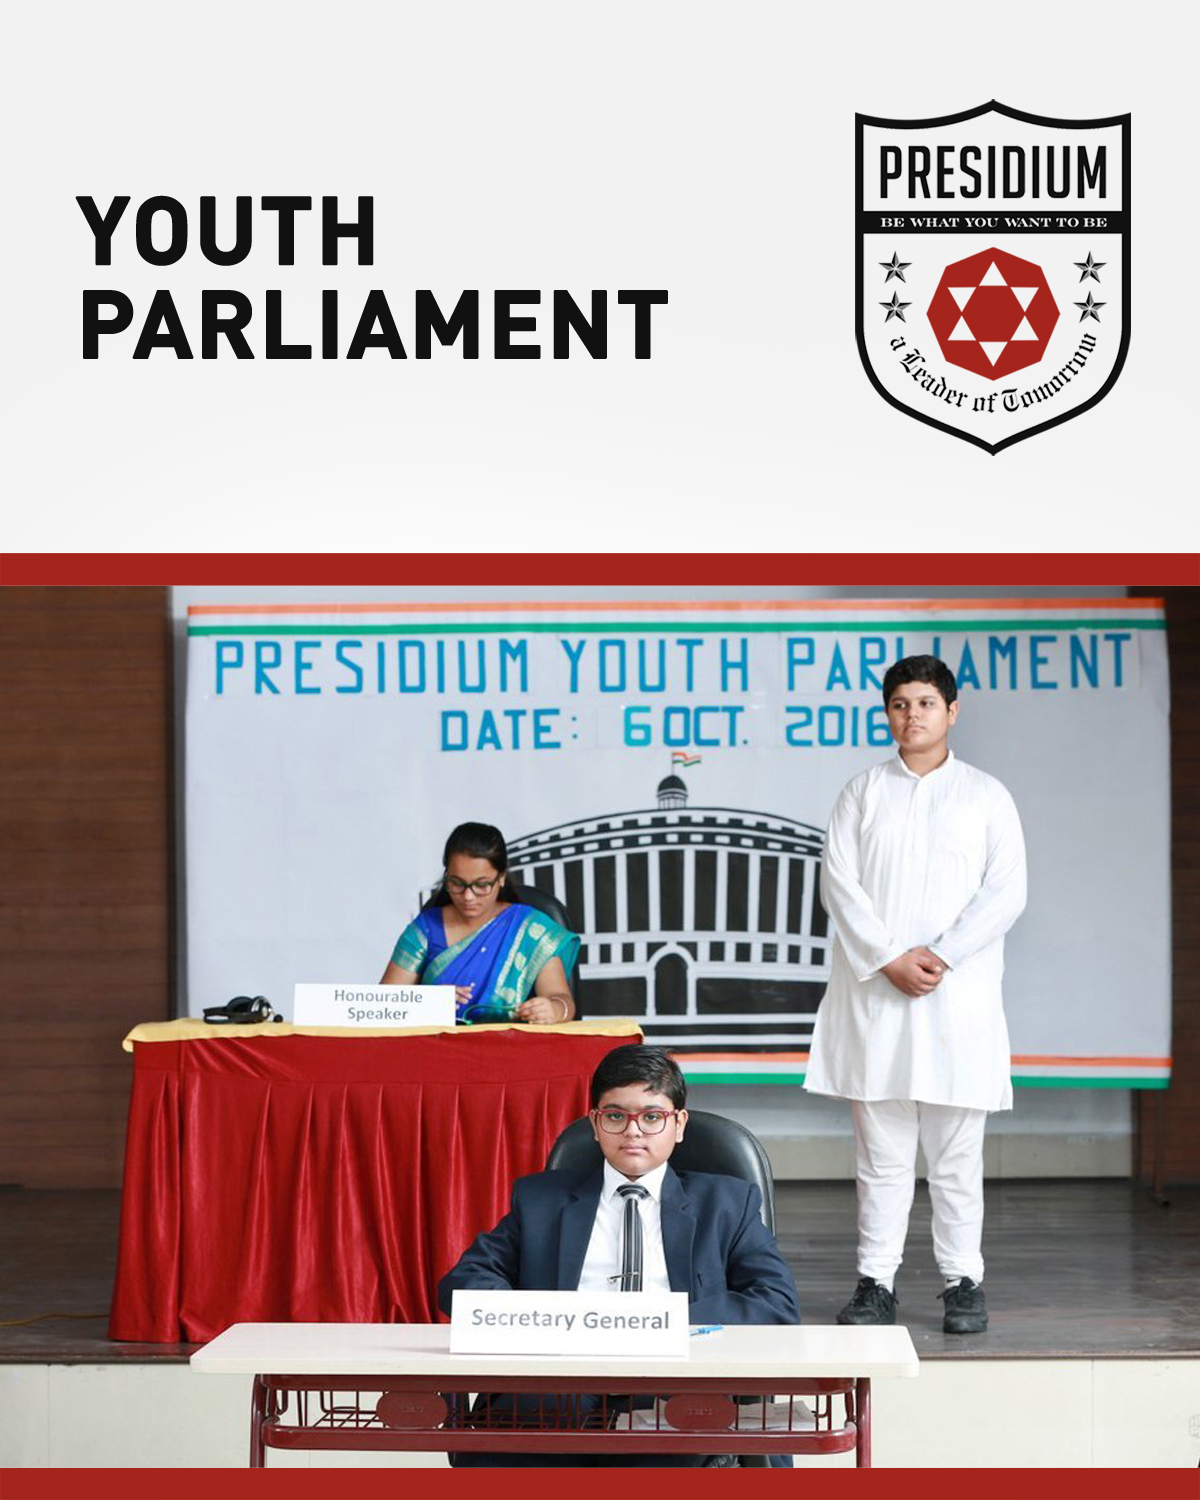 YOUTH PARLIAMENT: AN EDUCATIONAL SIMULATION FOR SENIOR PRESIDIANS